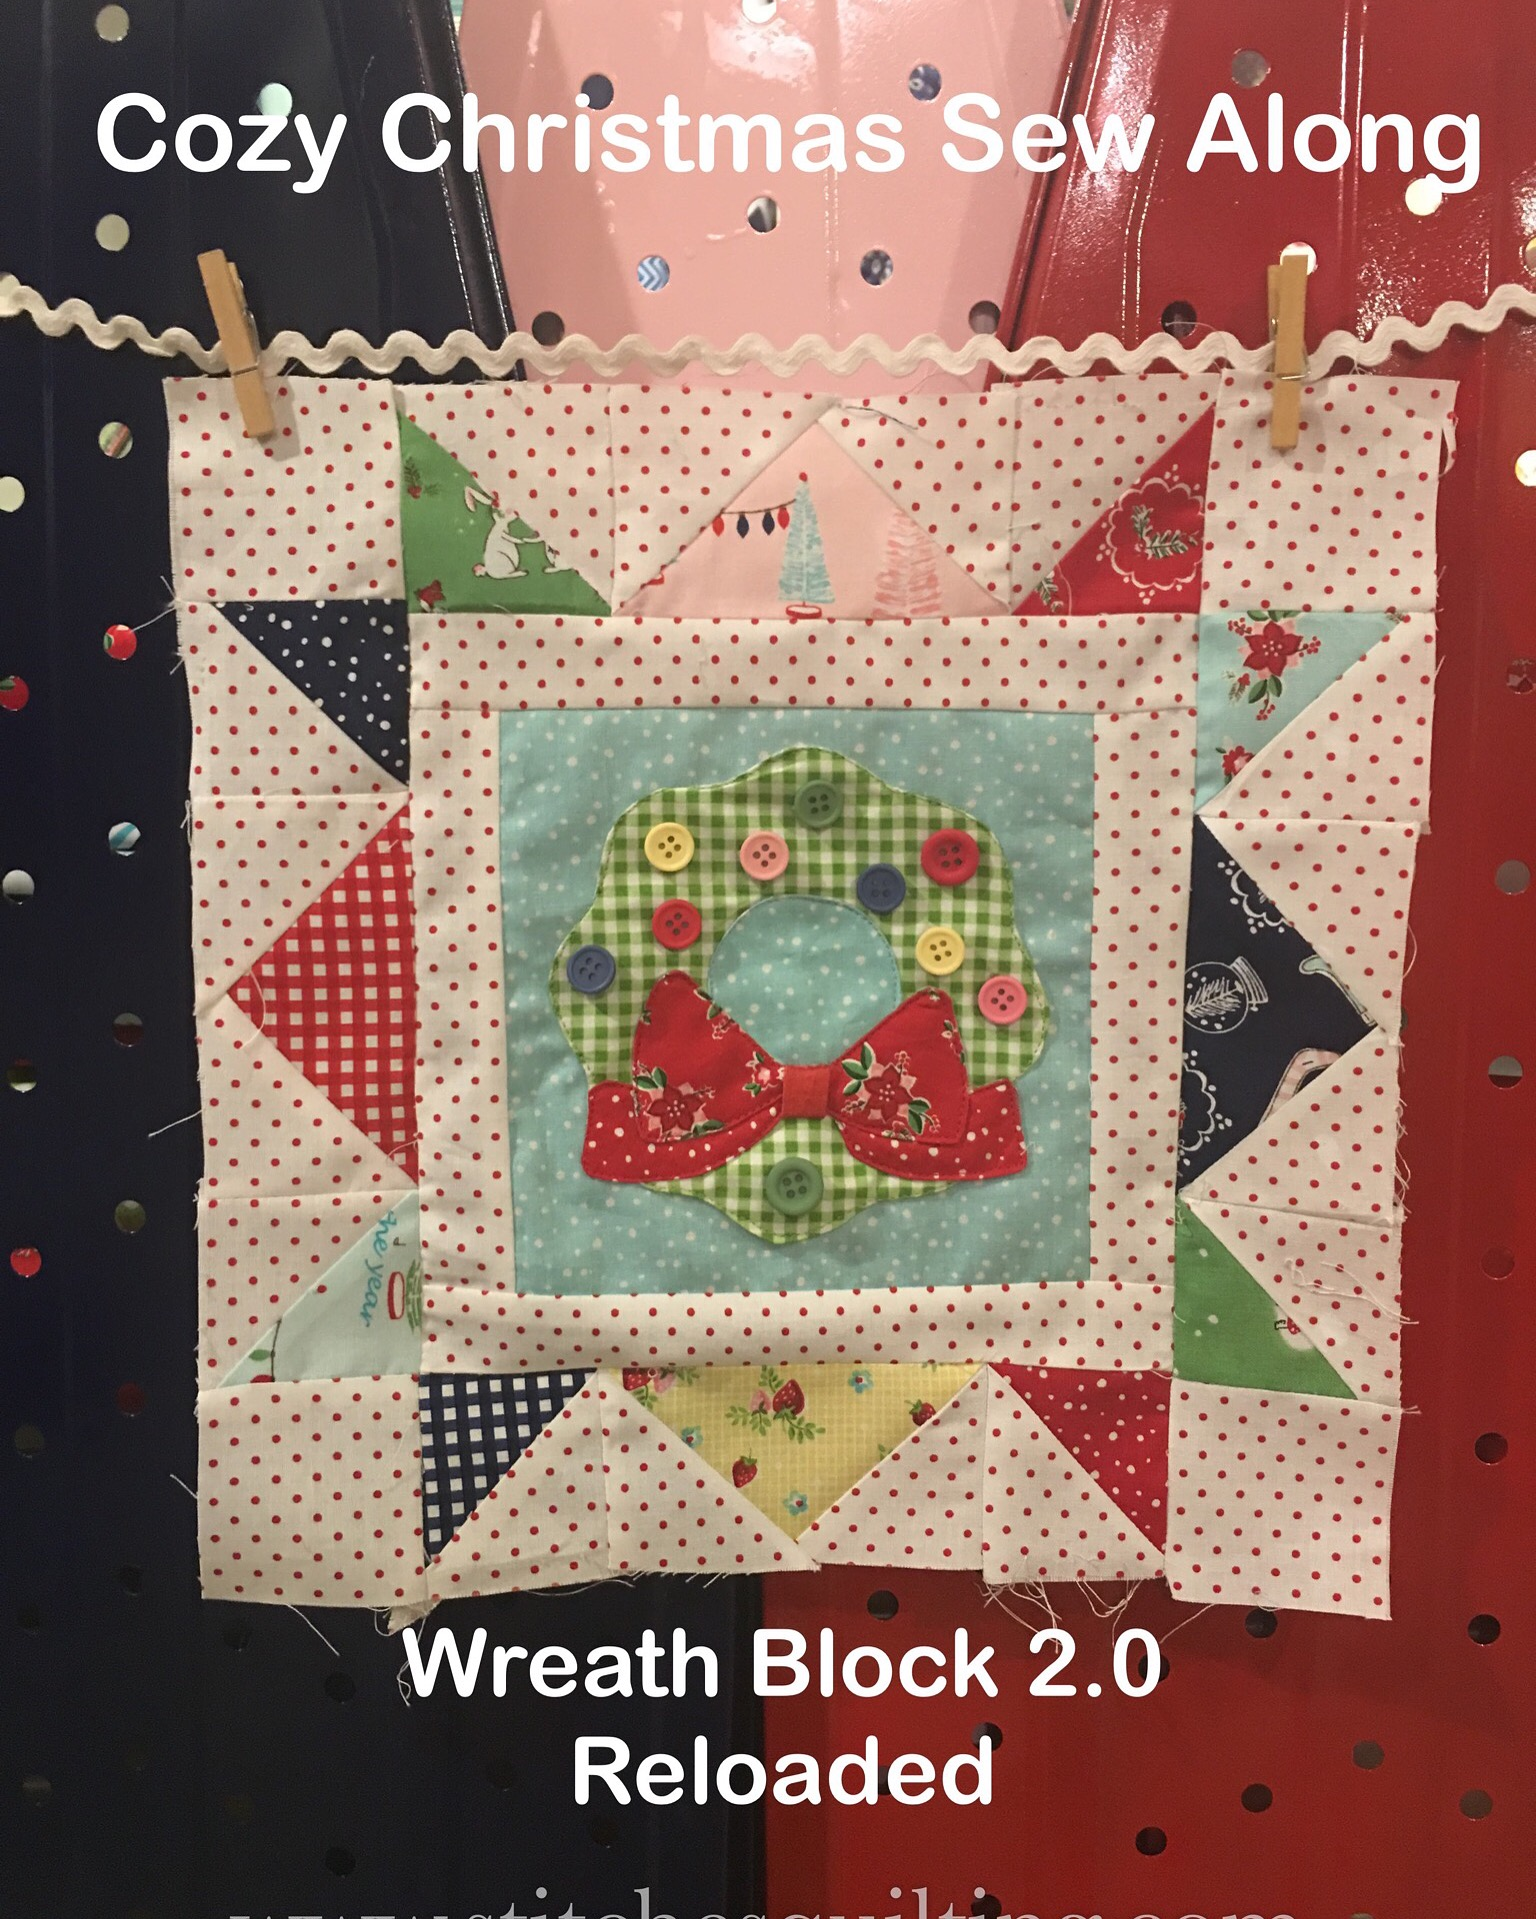 Cozy Christmas Stocking Block Sew Along Lori Holt